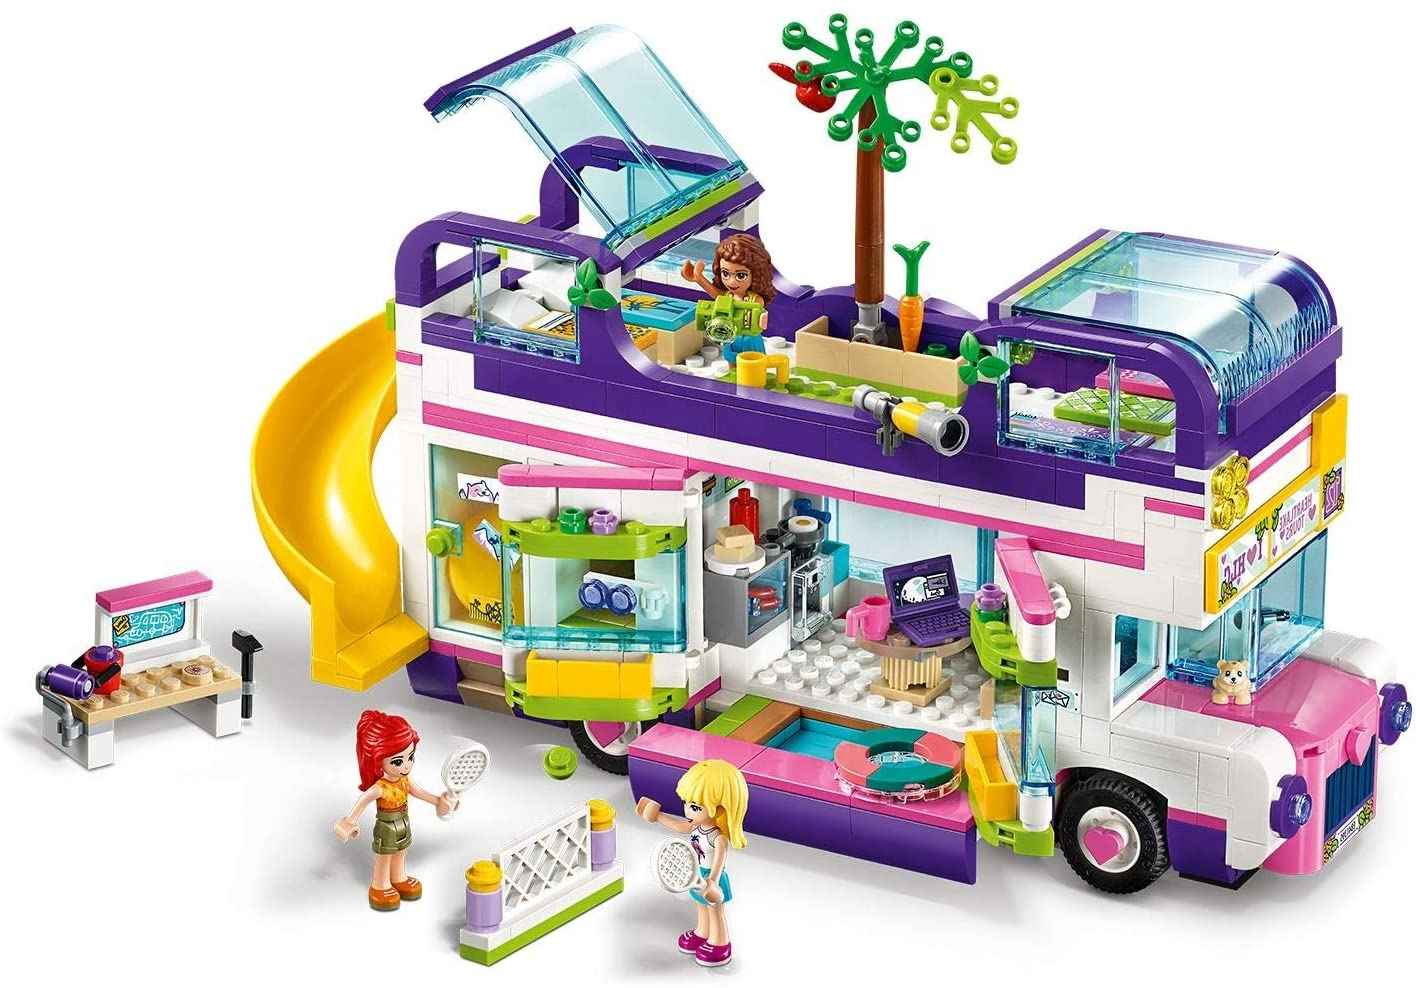 lego friends série lego friends pas cher lego friends central perk lego friends 2019 lego friends fille lego friends piscine lego friends coiffeur lego friends dessin animé